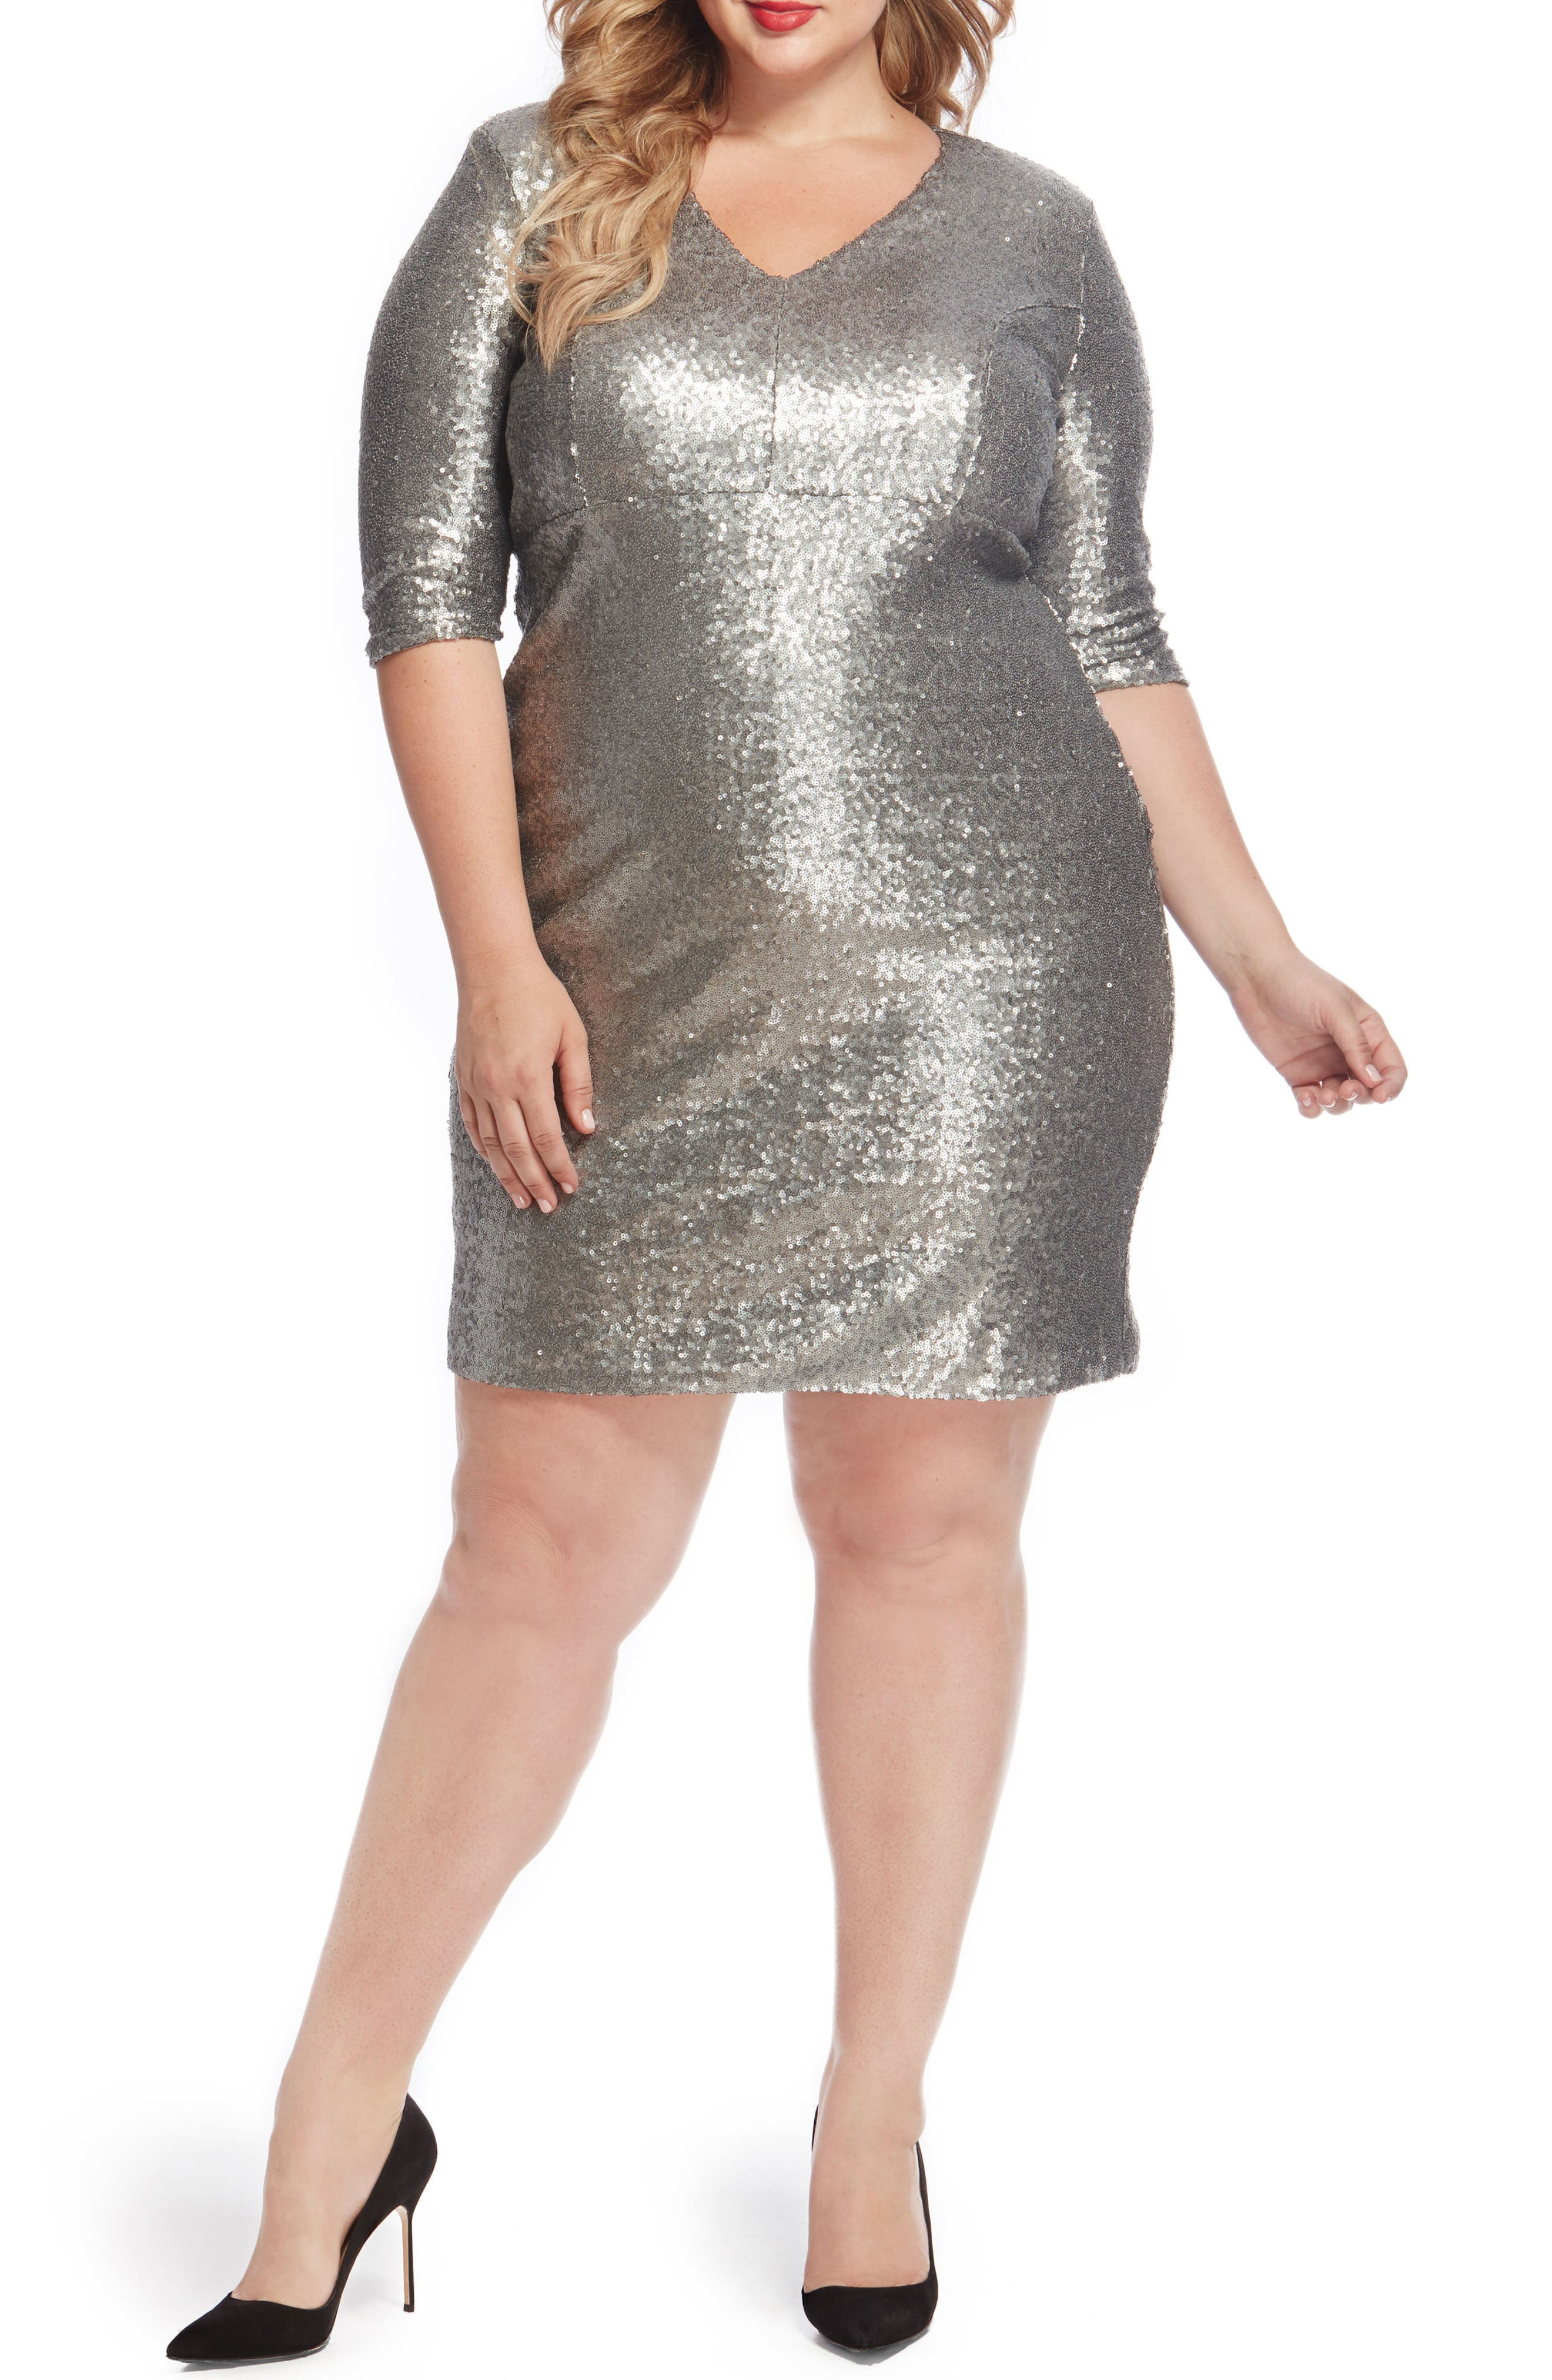 REBEL WILSON X ANGELS Empire Waist Sequin Dress (Plus Size)